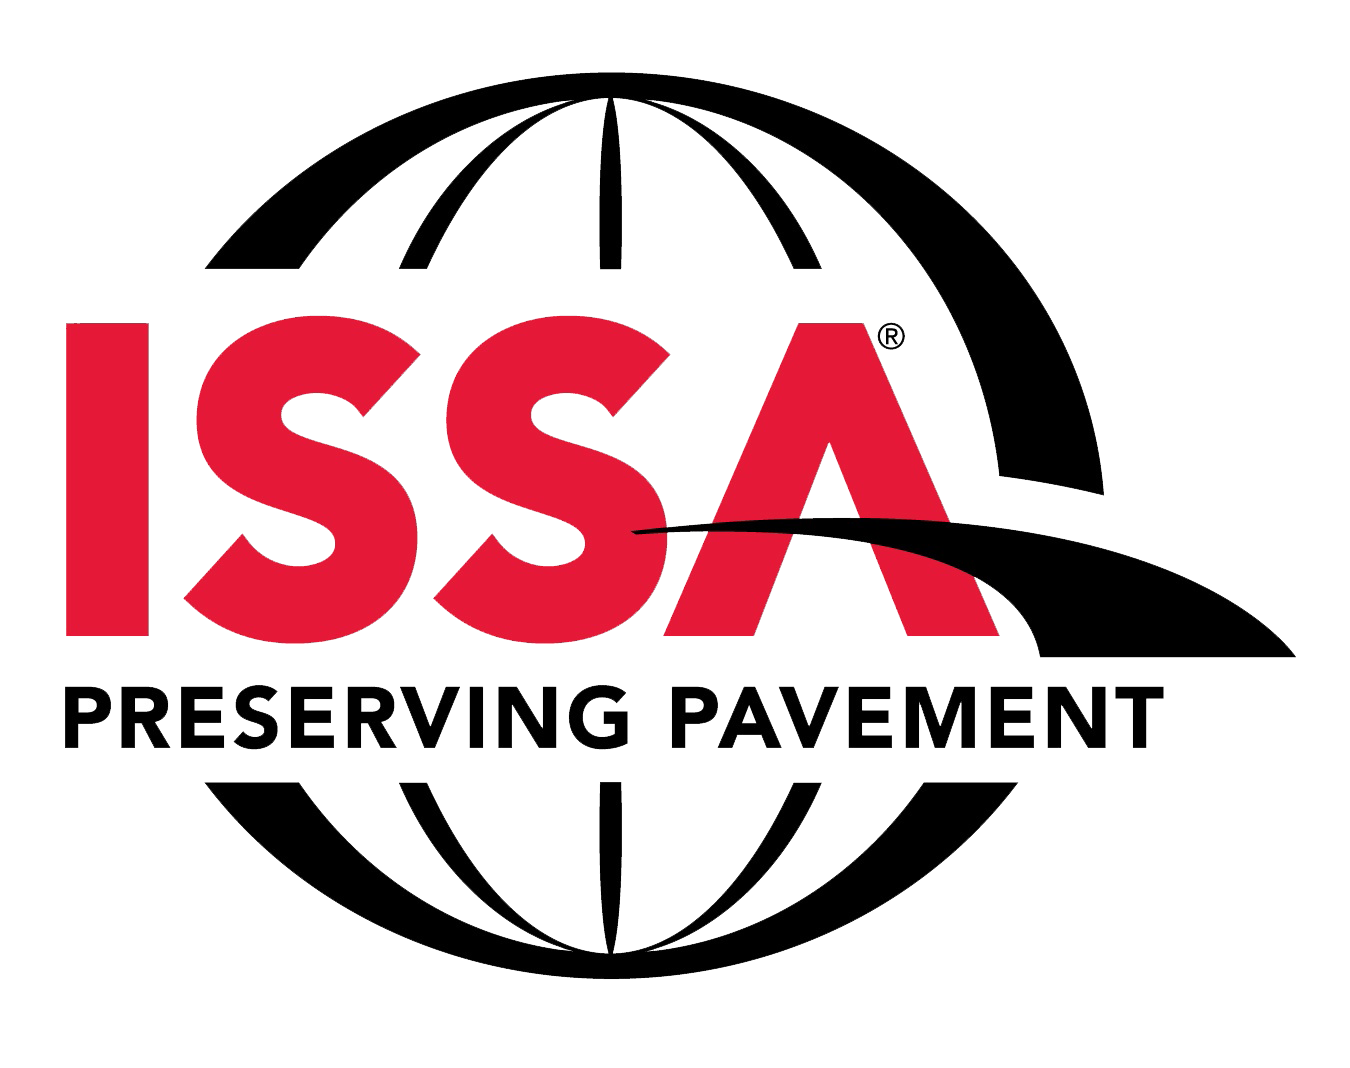 Issa Workshop Certification The National Center For Pavement